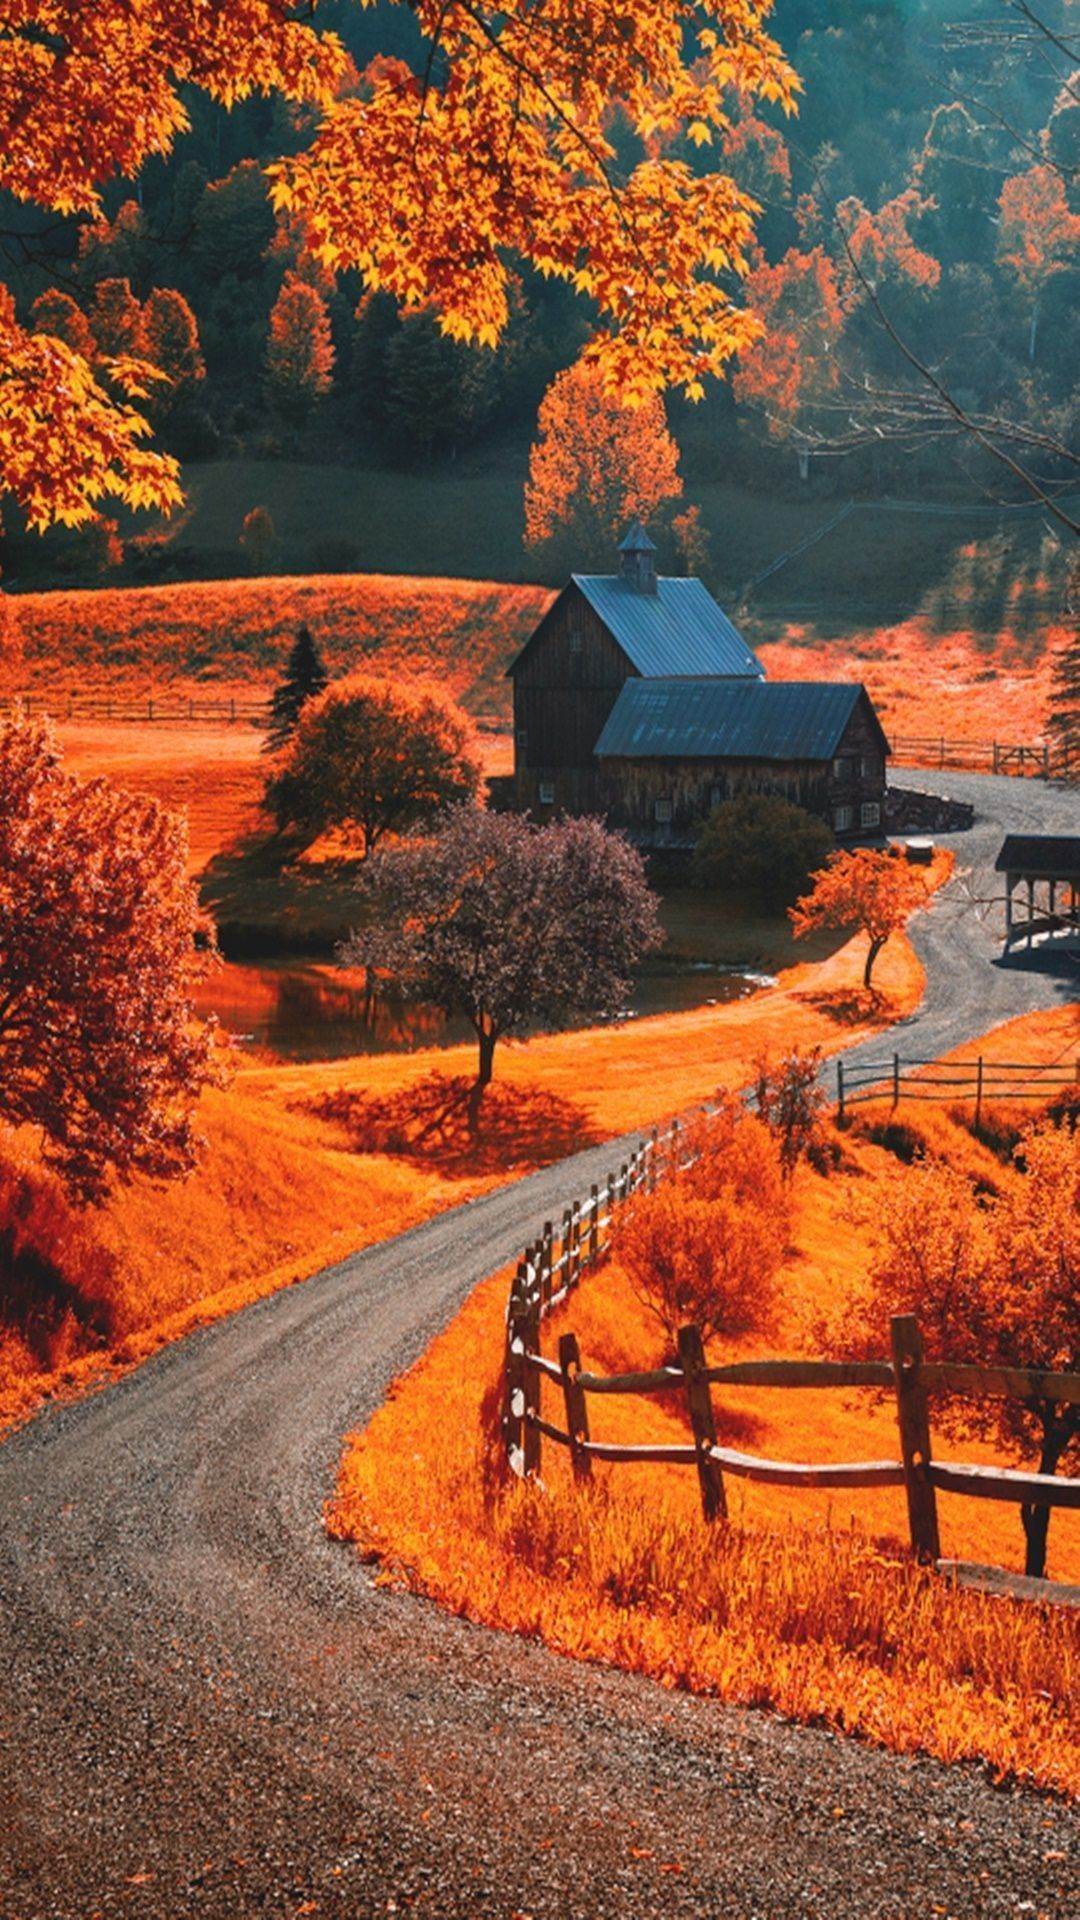 Fall Wallpaper Hd » Hupages » Download Iphone Wallpapers #fallwallpapers Fall ...